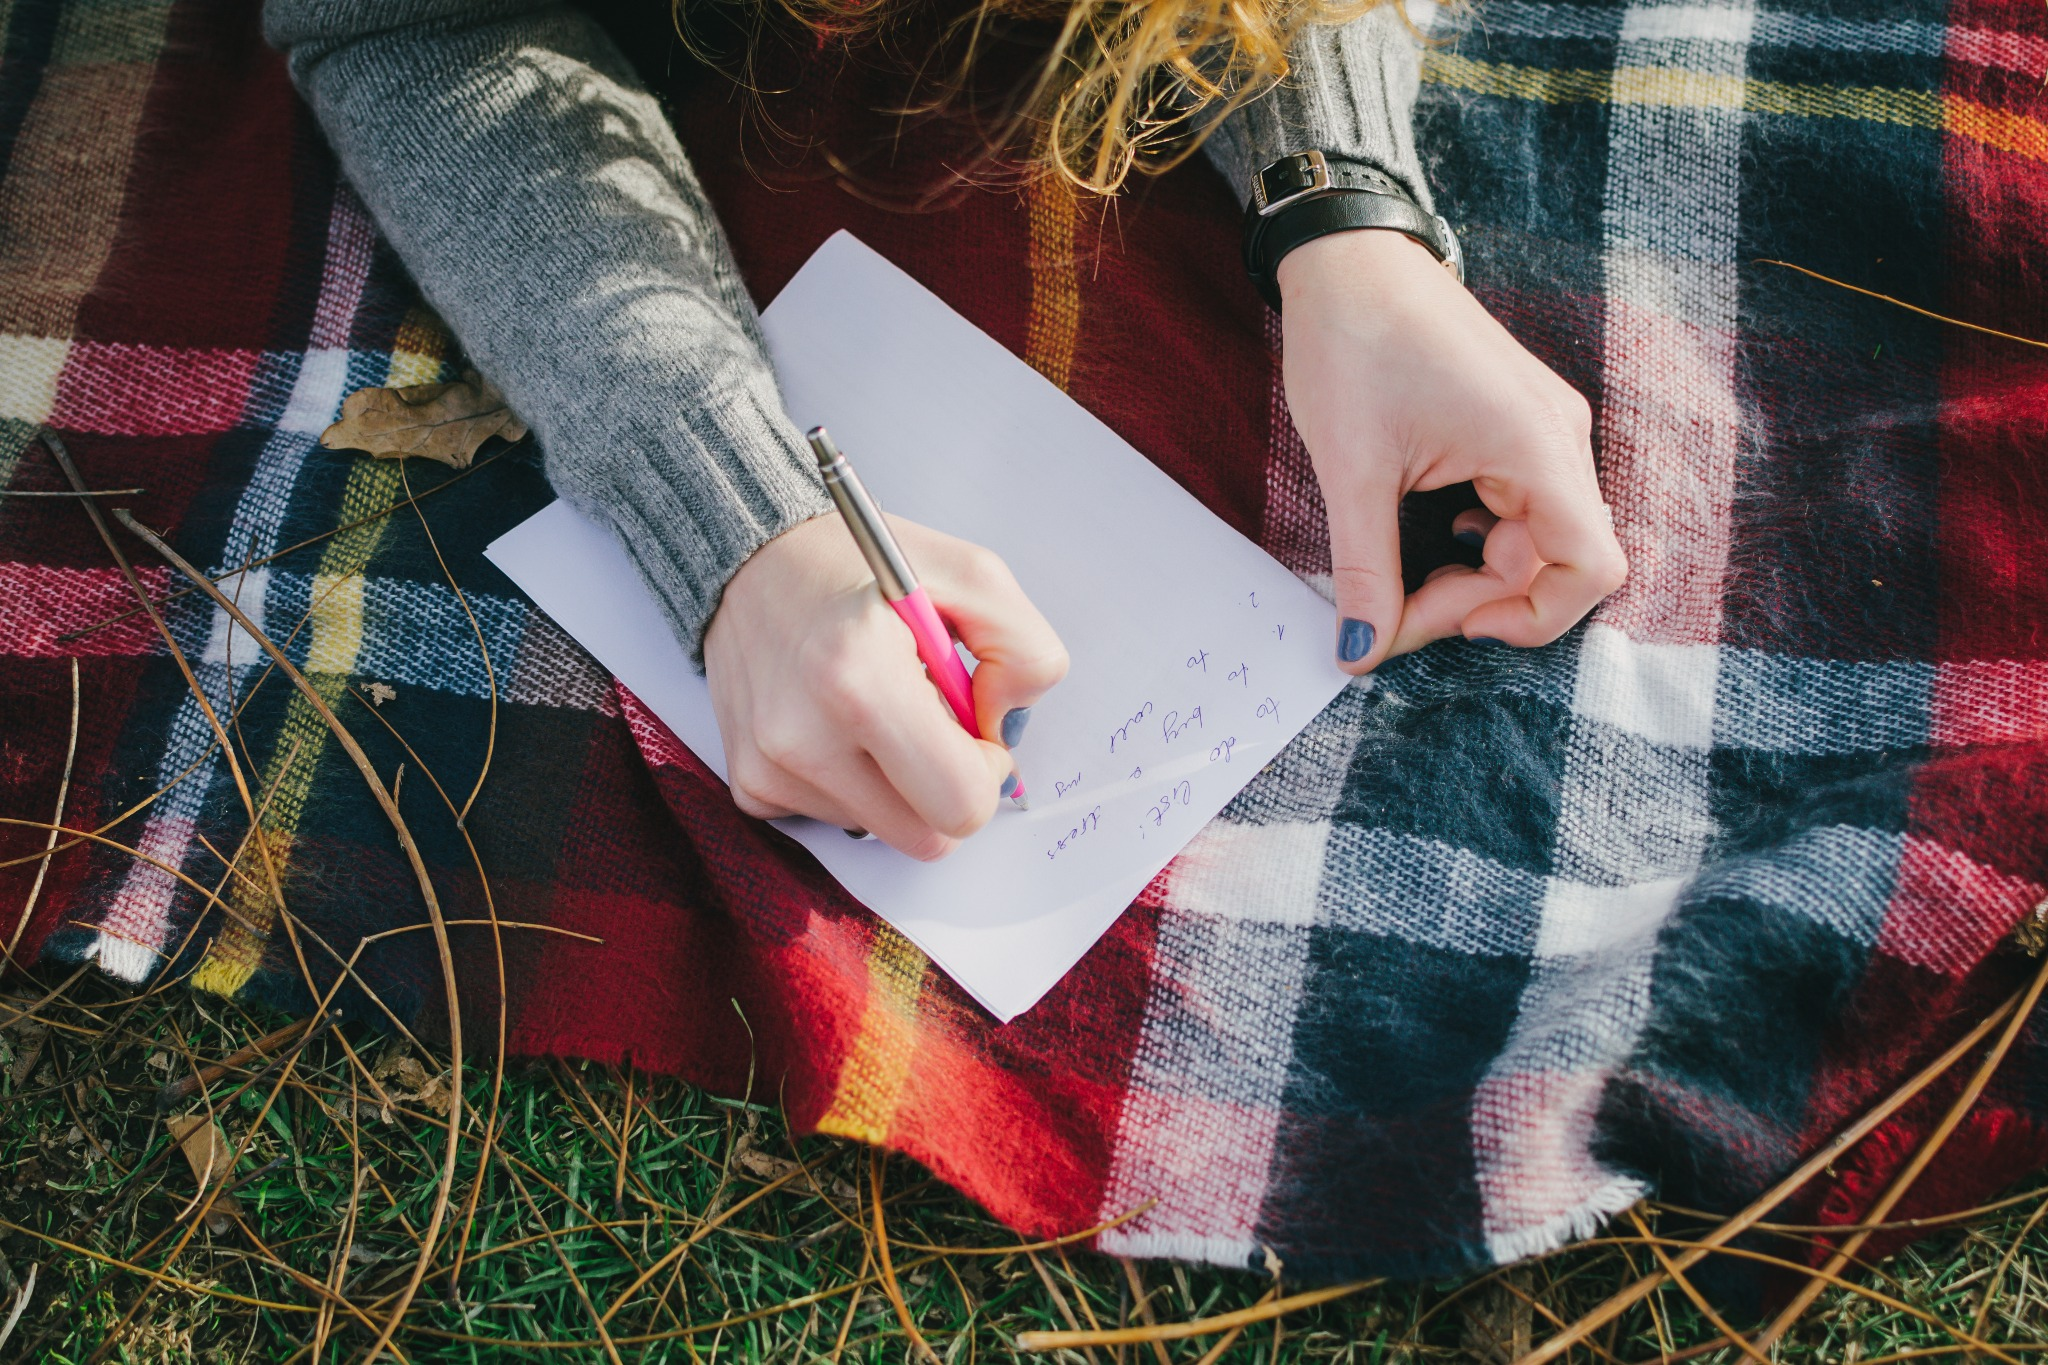 A person journaling outdoors while laying on a tartan blanket to reflect during Beltane.